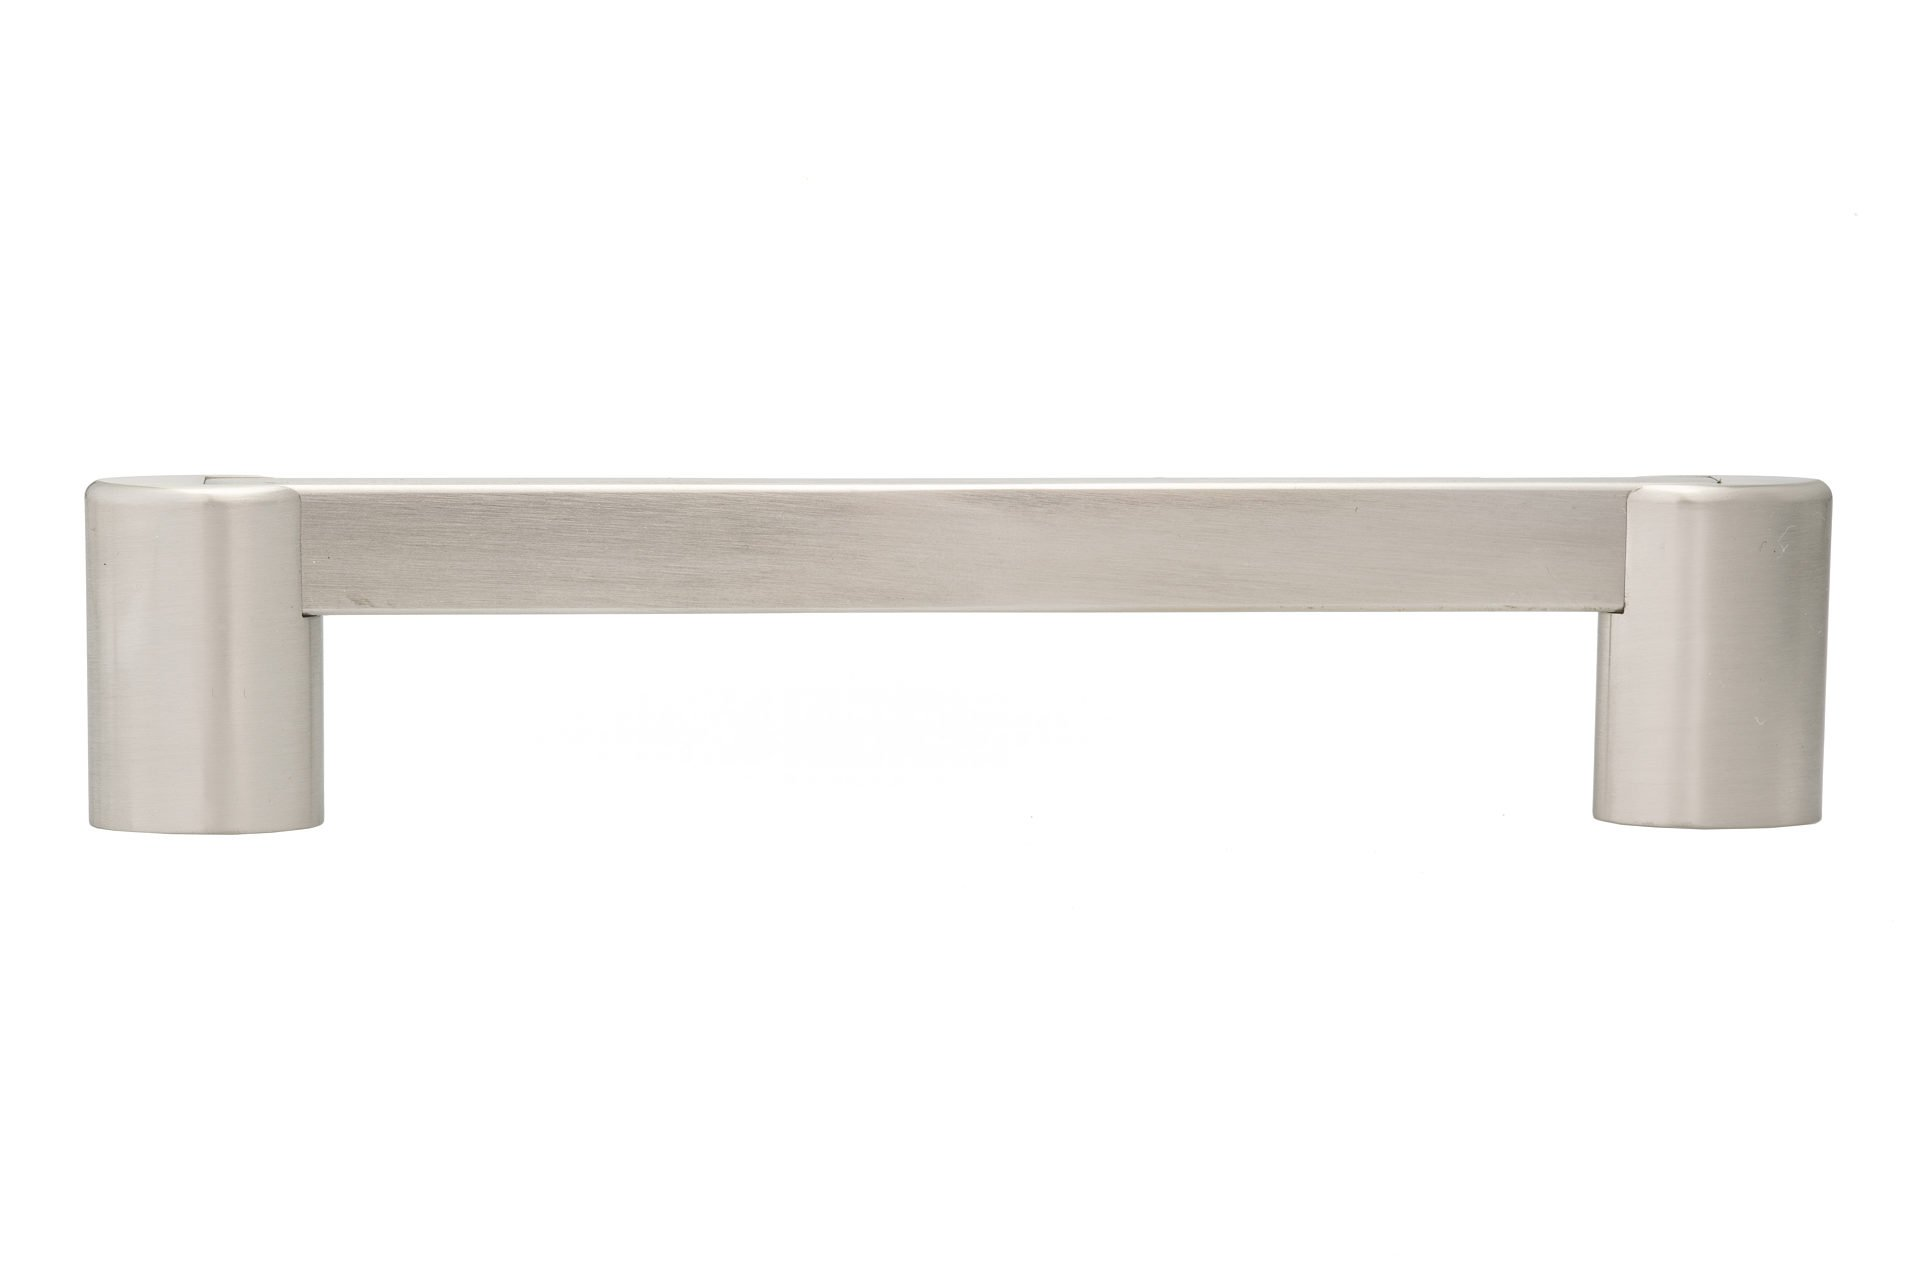 Richelieu-Hardware–bp8728128195–Modernes-Metall-Pull–87285-132-in-128-mm–Brushed-Nickel-Finish